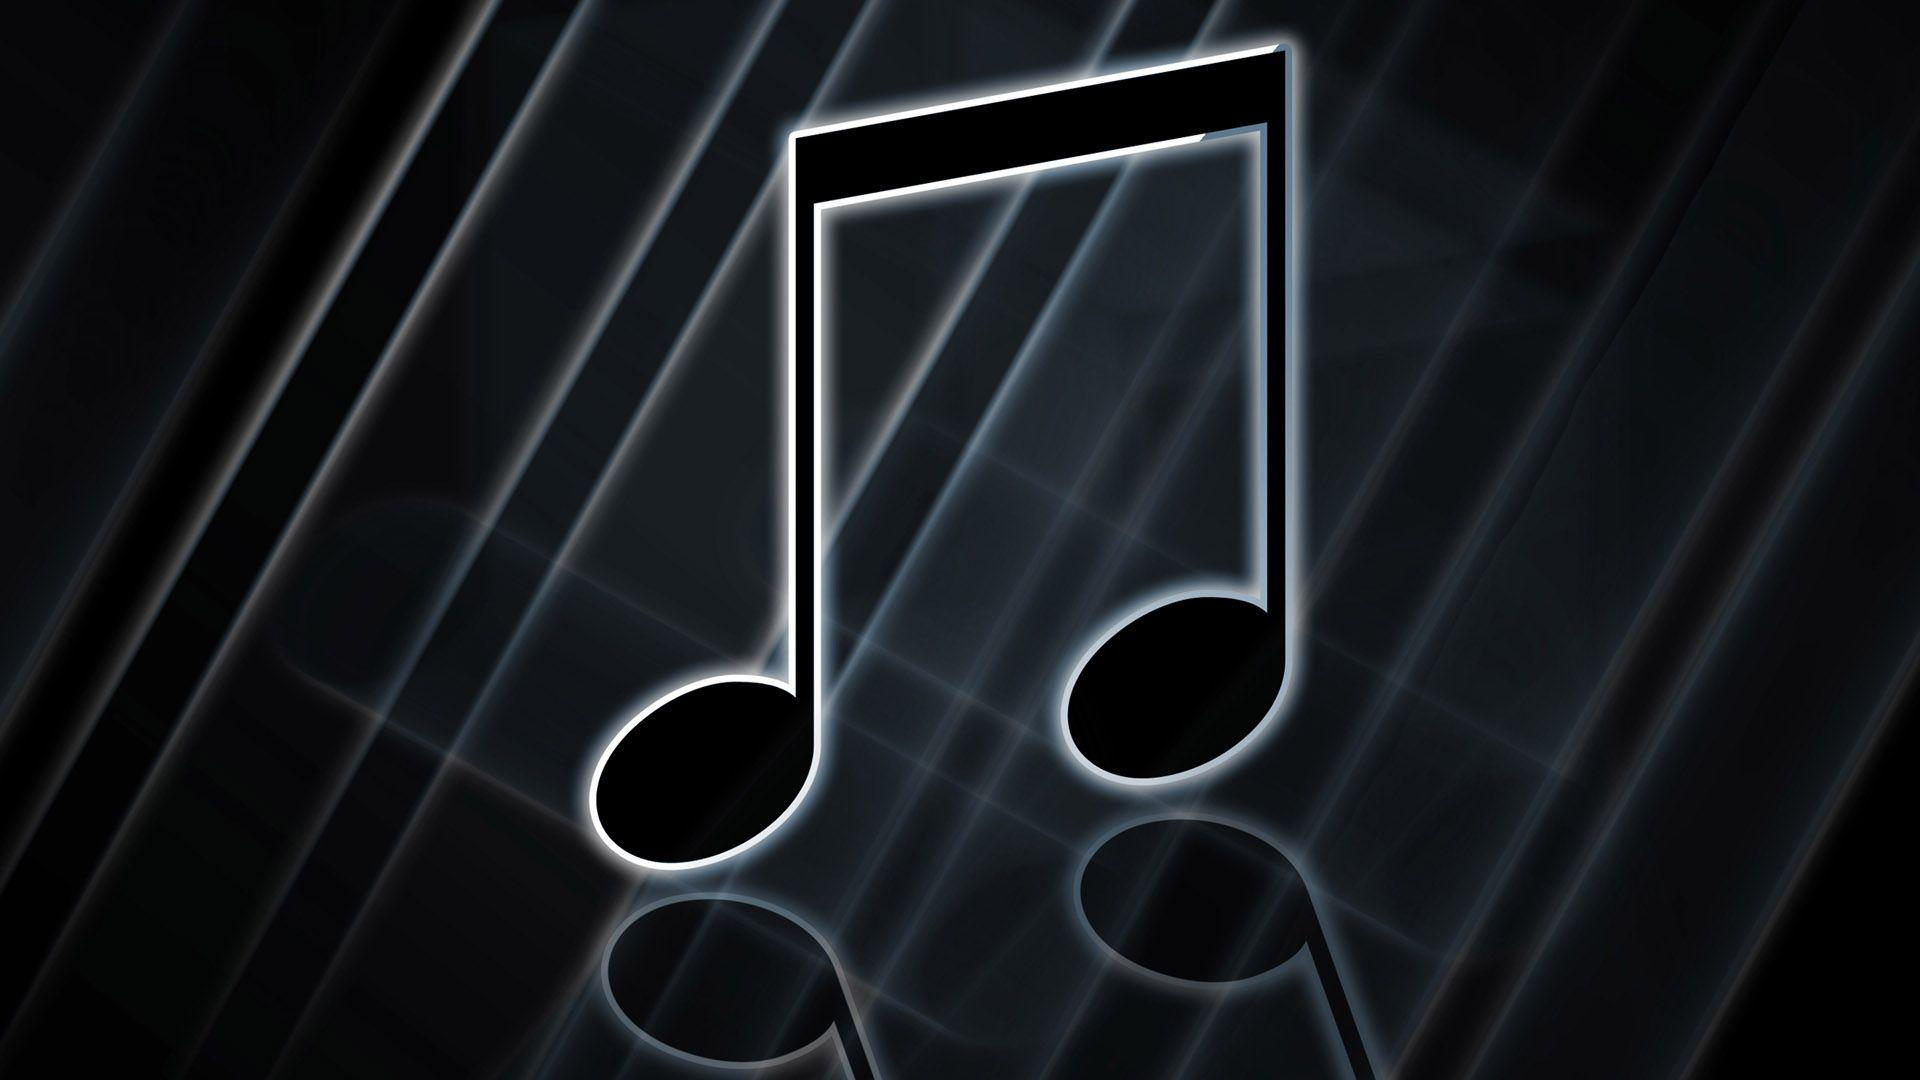 Wallpapers For > Music Abstract Desktop Backgrounds